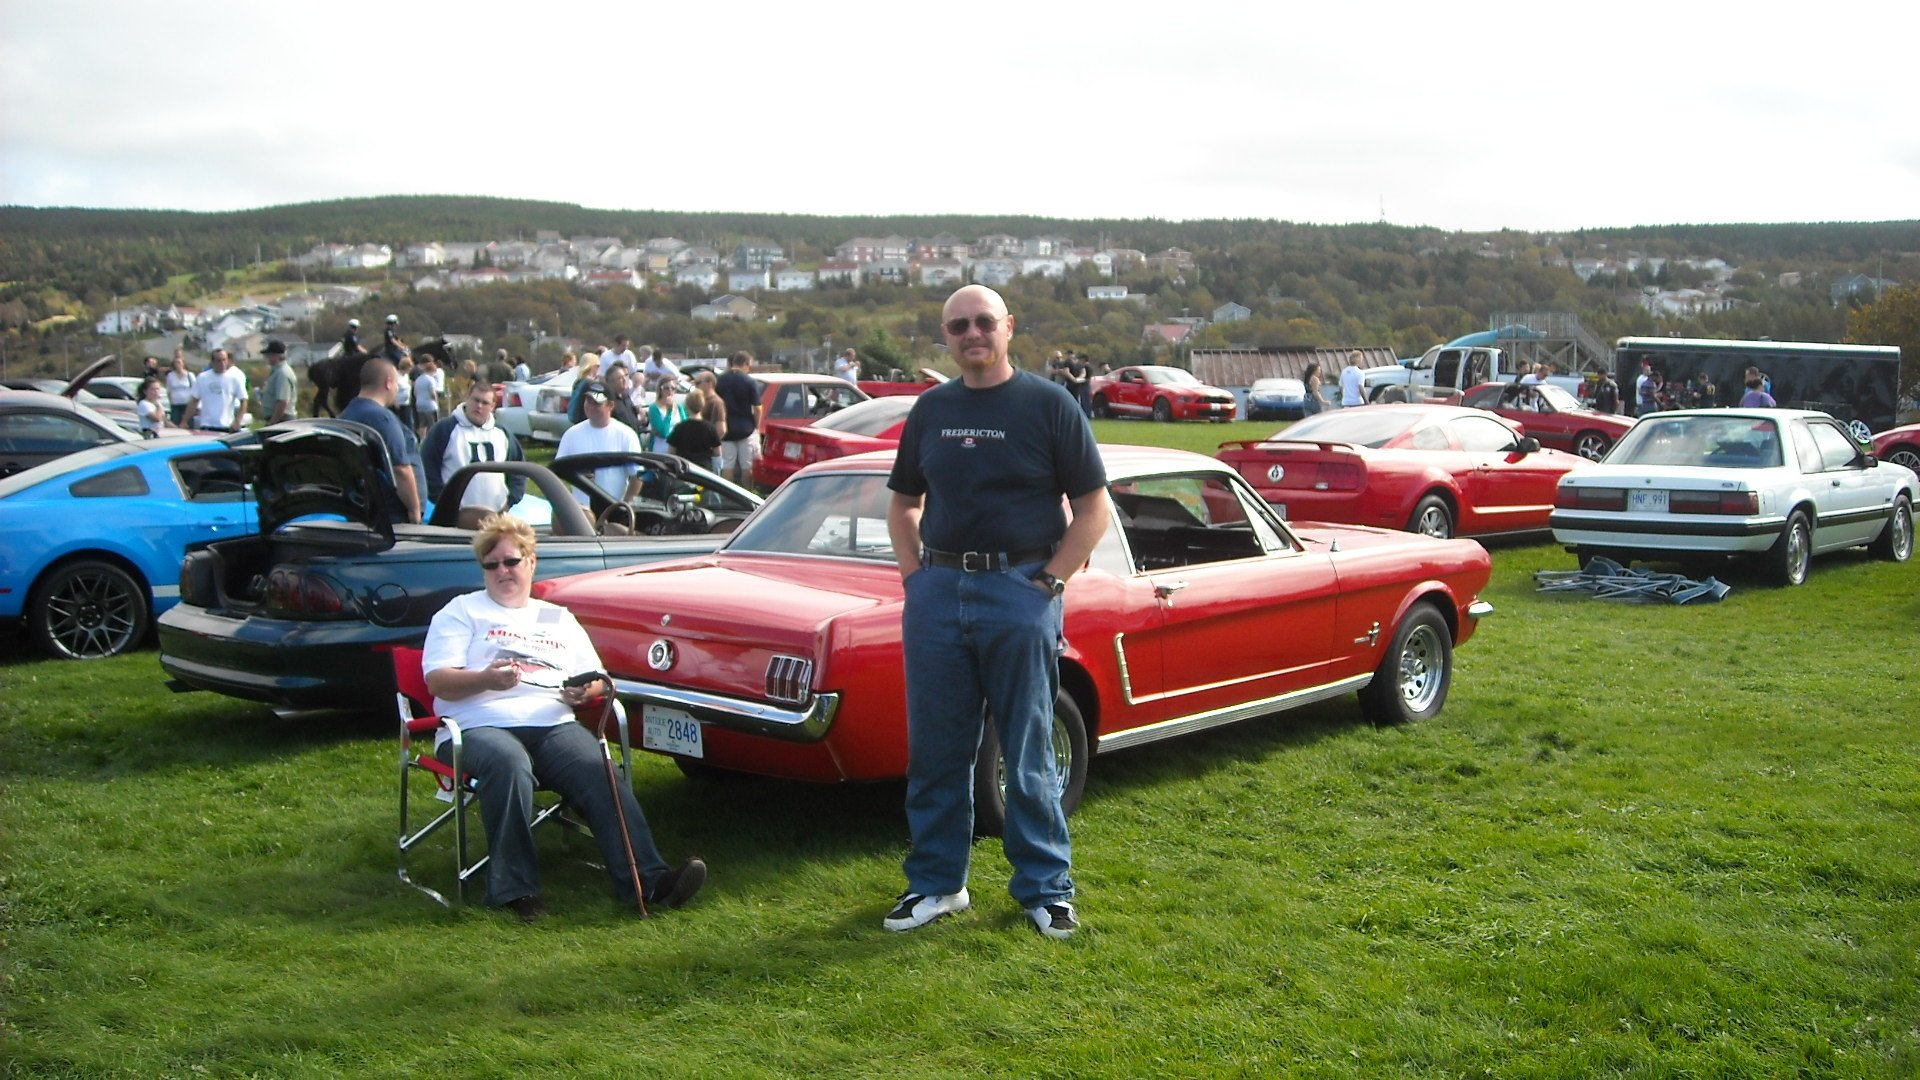 Mustangs in the Park: All Ford Mustangs Car Show in St. John's, Newfoundland-dscn0039.jpg